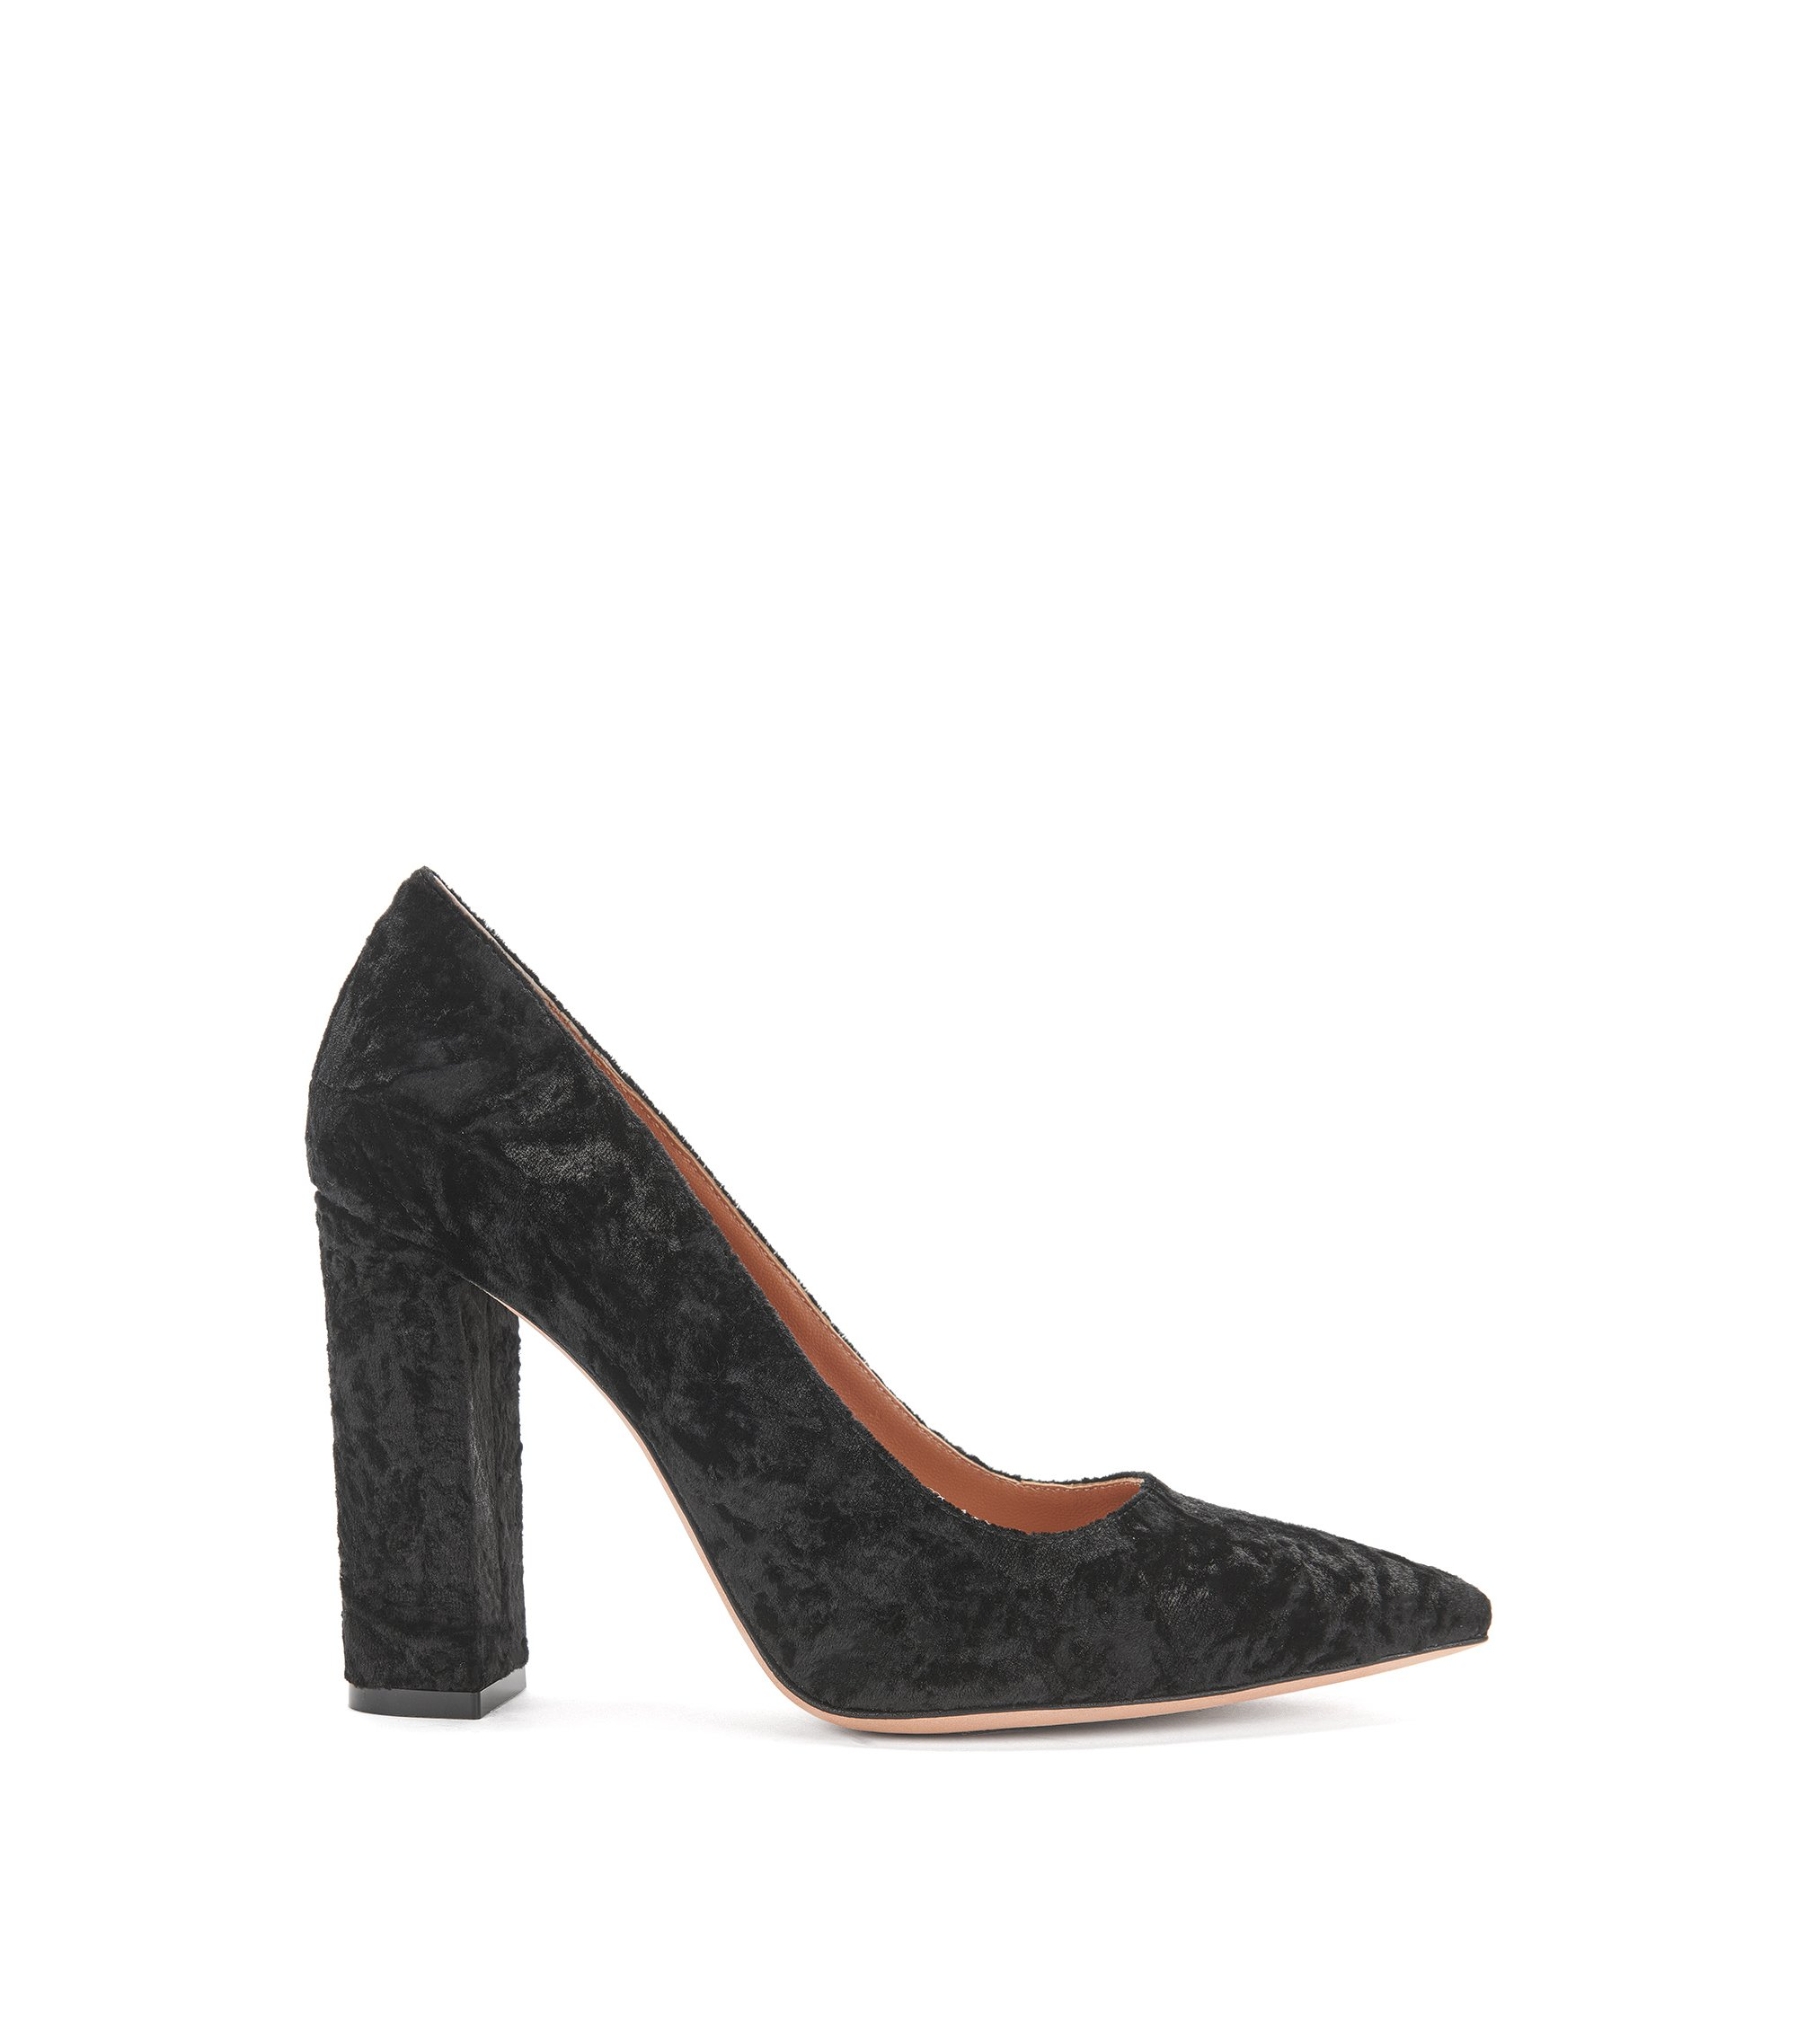 Crushed velvet pumps with block heel, Black